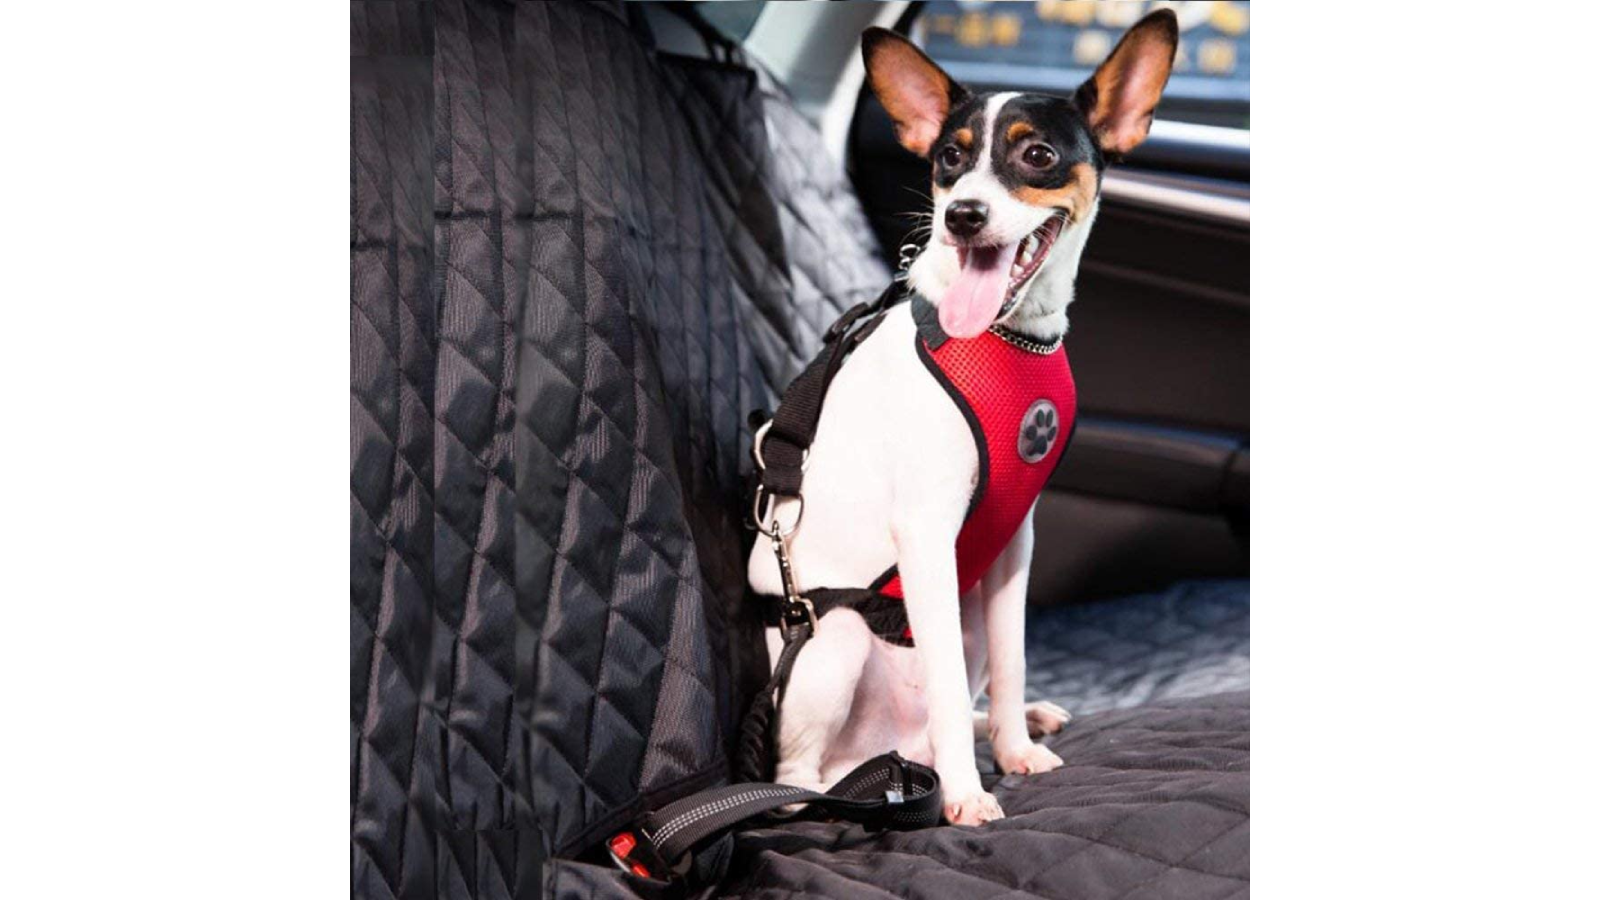 Small dog wearing a red harness seatbelt in car.